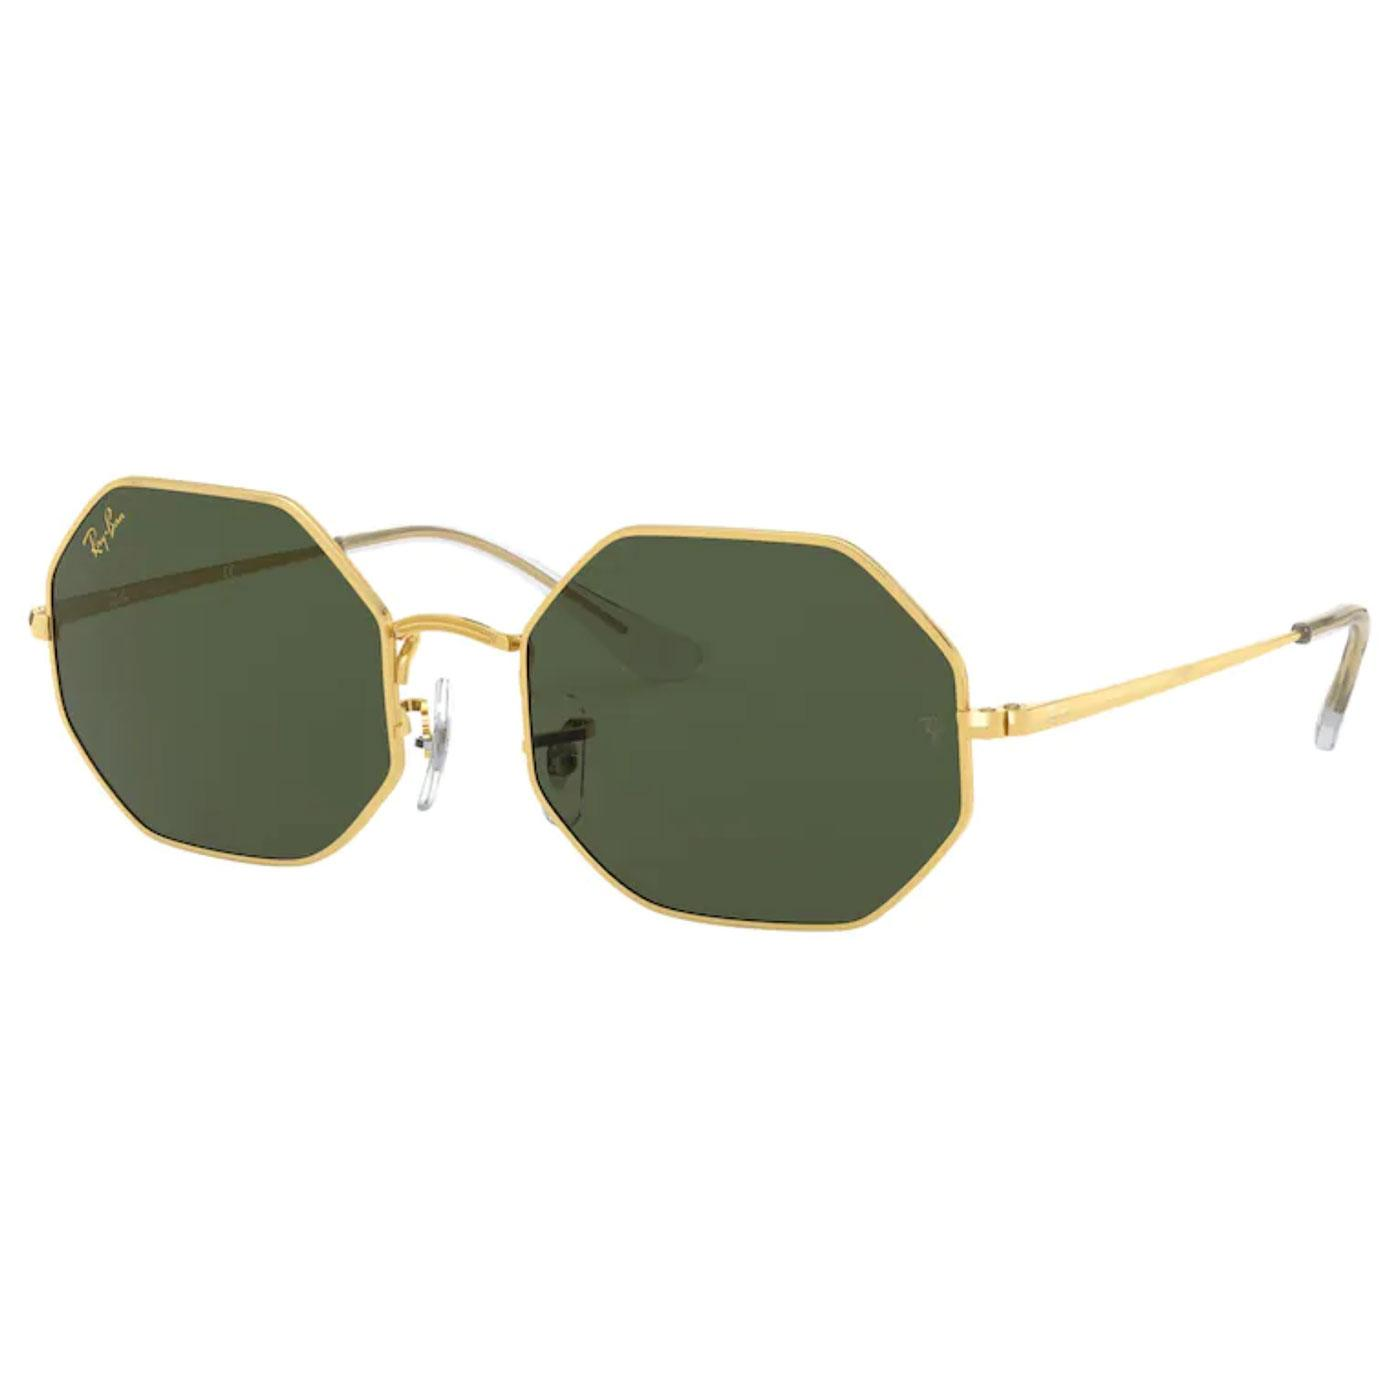 RAY-BAN RB1972 Mod Legend Gold Octagon Sunglasses